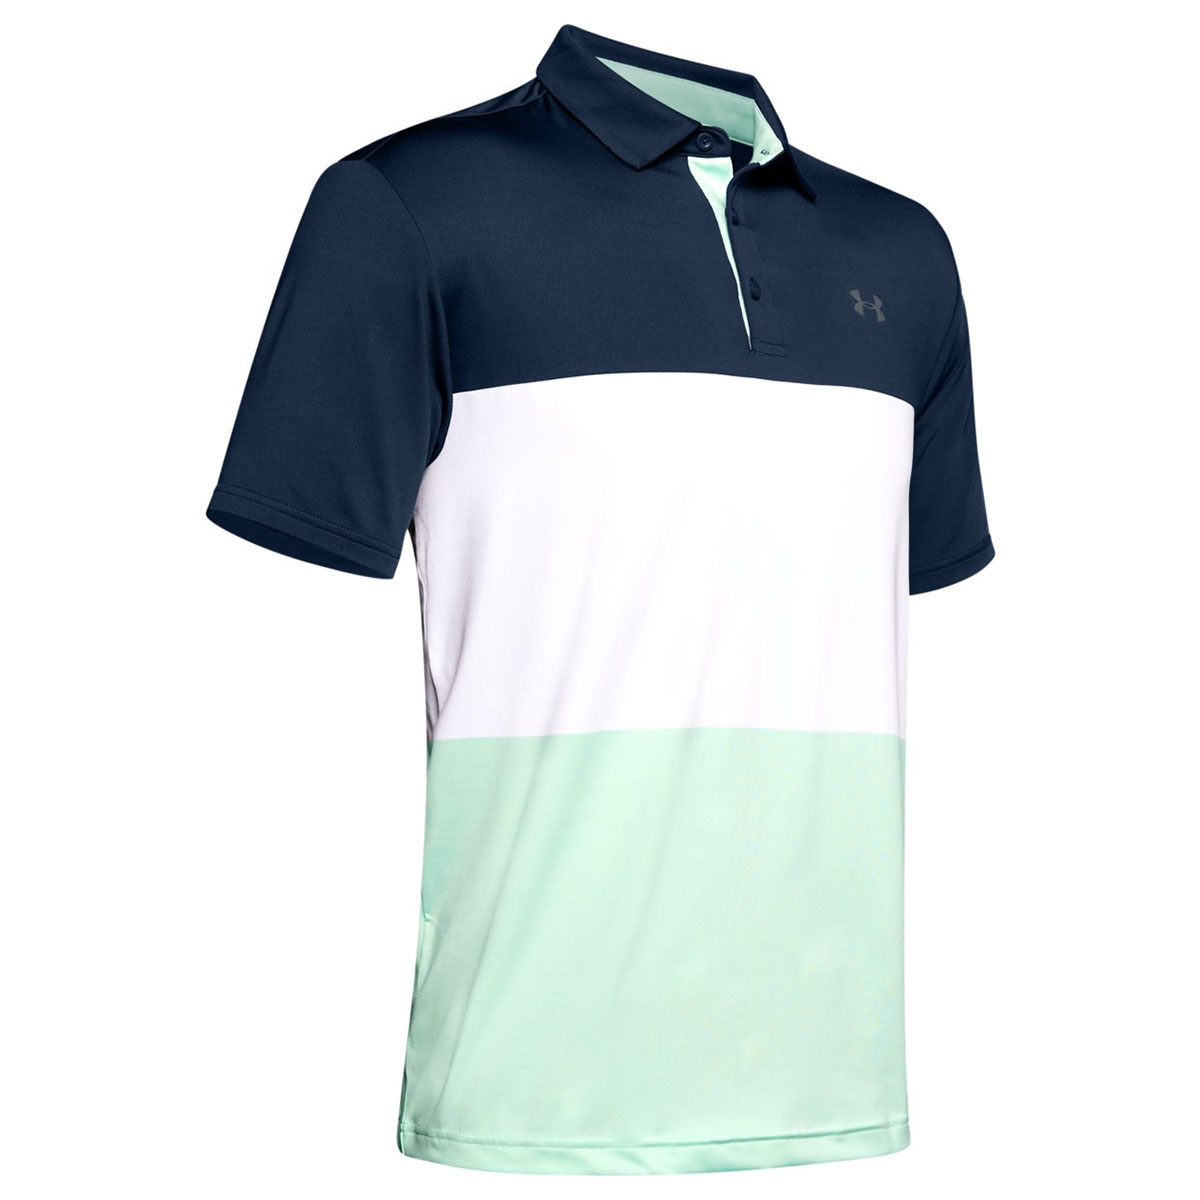 Under-Armour-Mens-2019-Playoff-Polo-2-0-Breathable-Light-Stretch-Polo-Shirt thumbnail 14